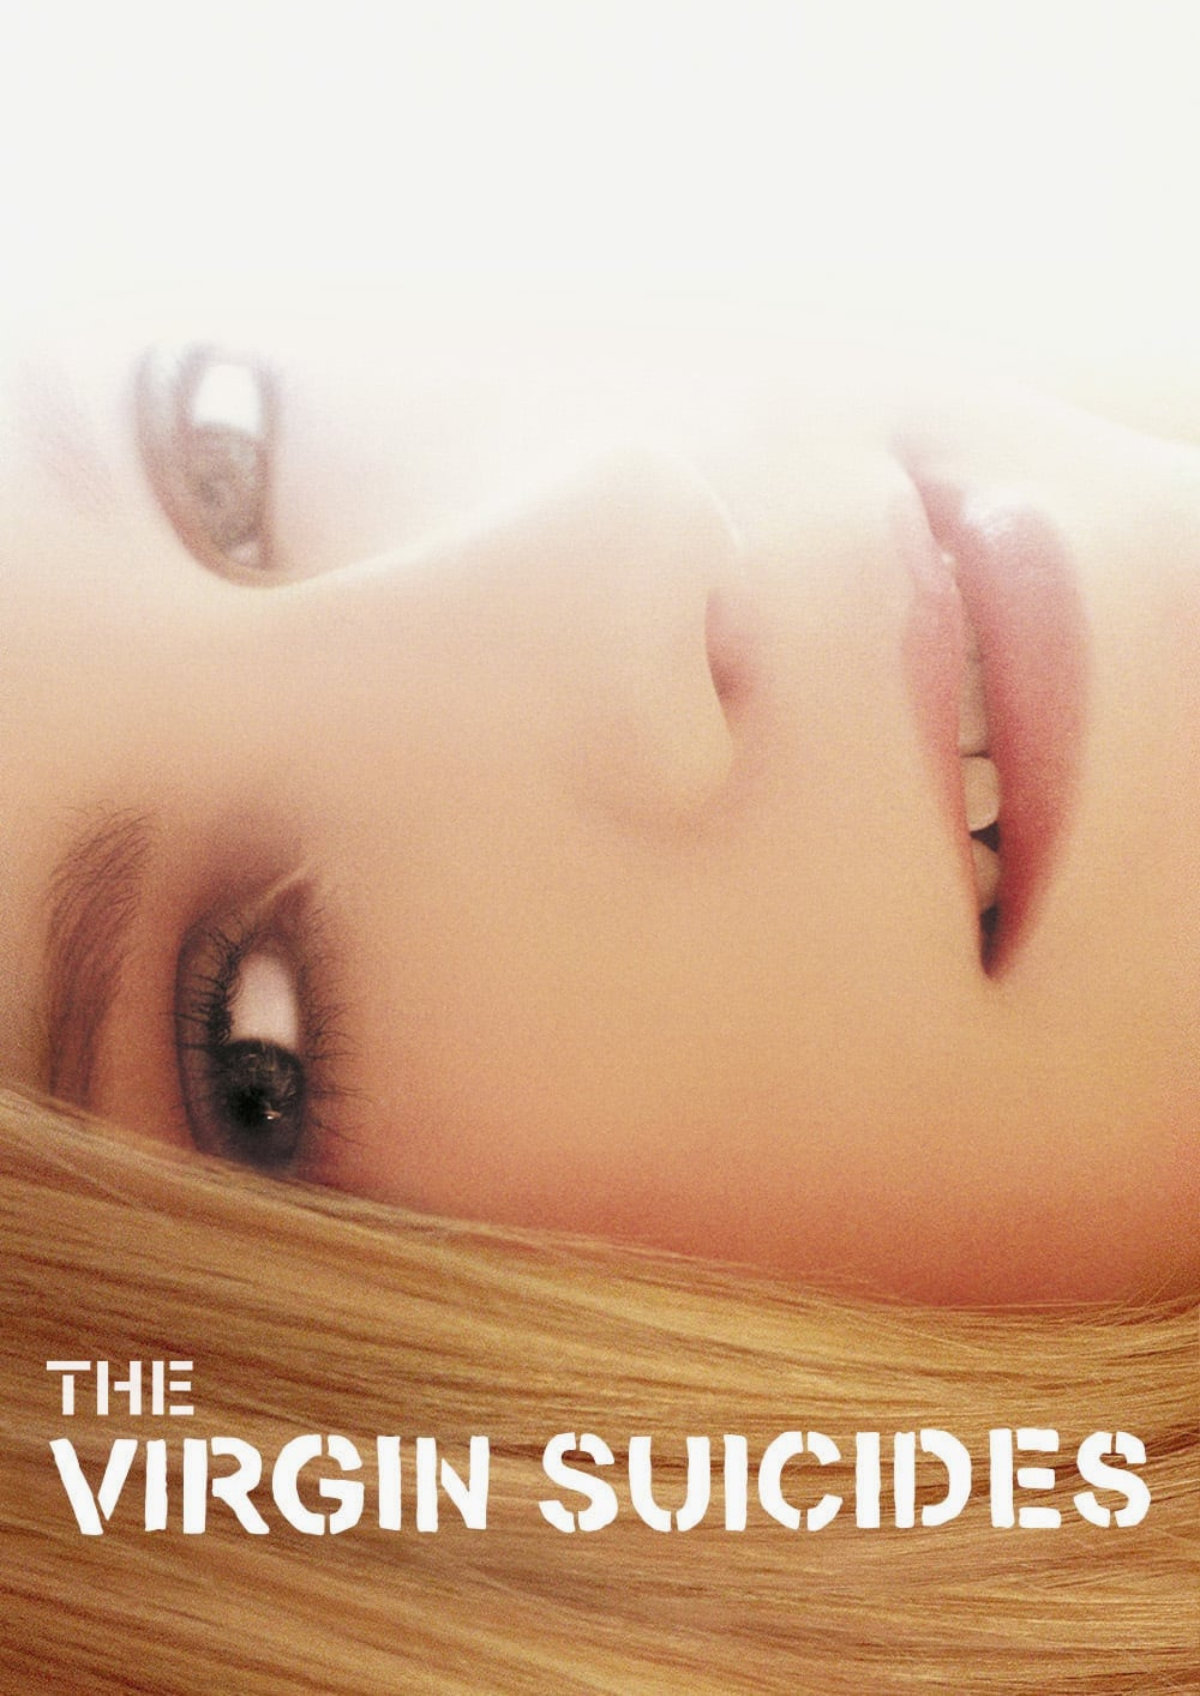 'The Virgin Suicides' movie poster